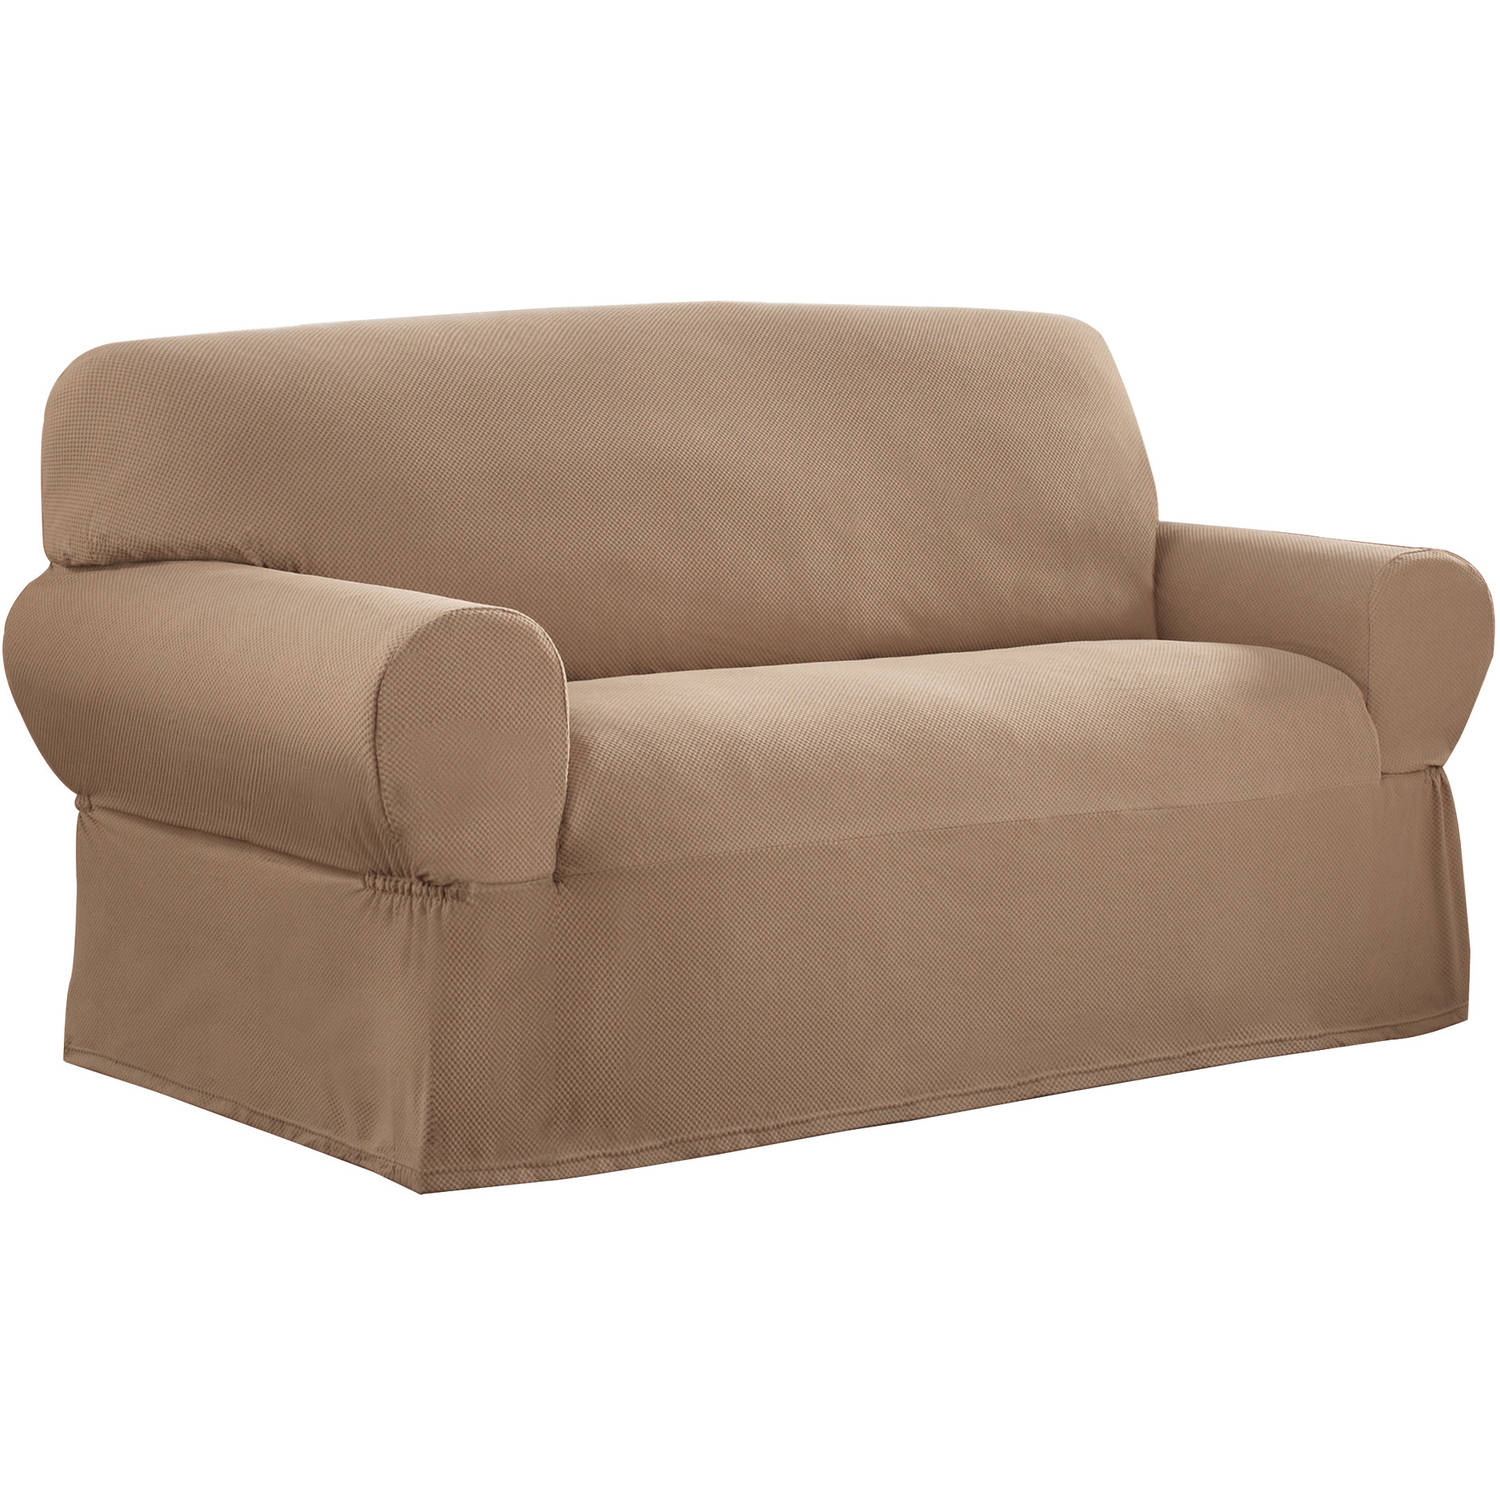 Sure fit cotton duck sofa slipcover walmartcom for Fitted furniture slipcovers